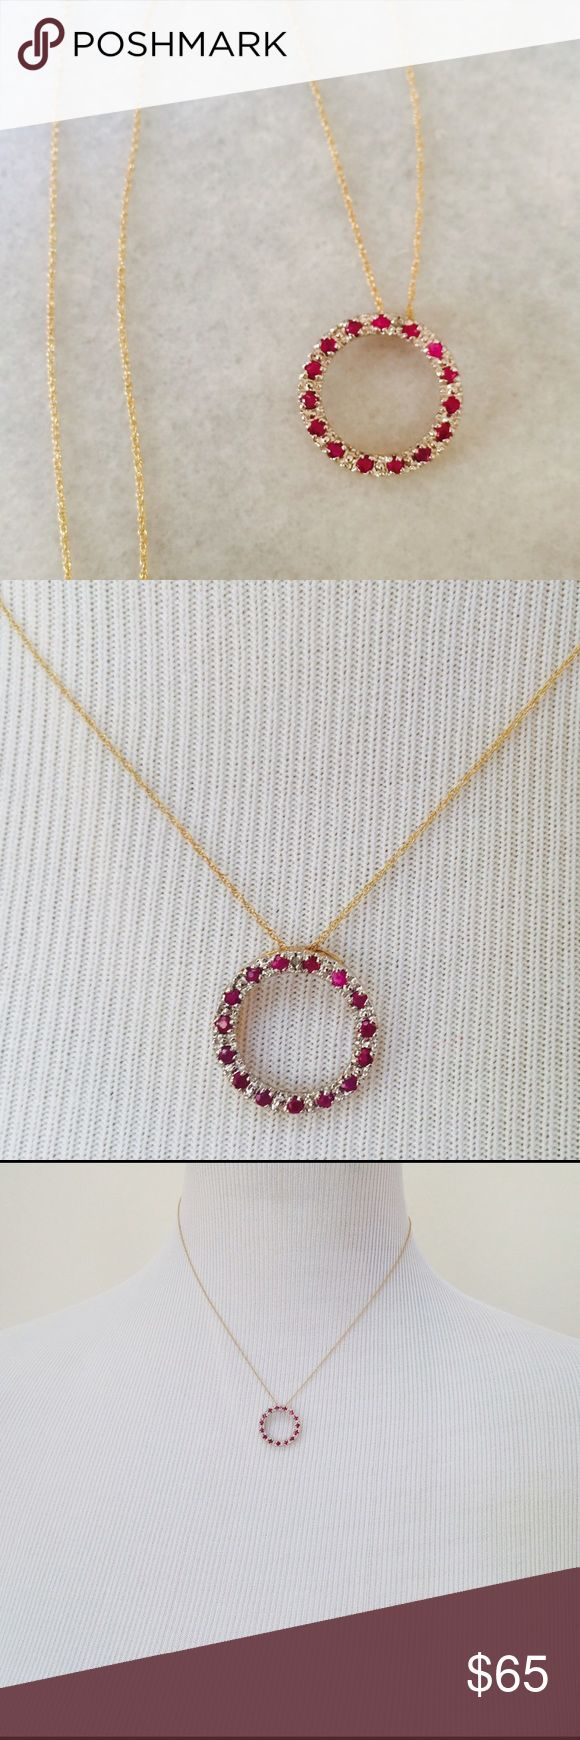 Genuine ruby & diamond necklace Genuine ruby and diamond circle necklace, 10K gold chain, never worn, vintage Jewelry Necklaces